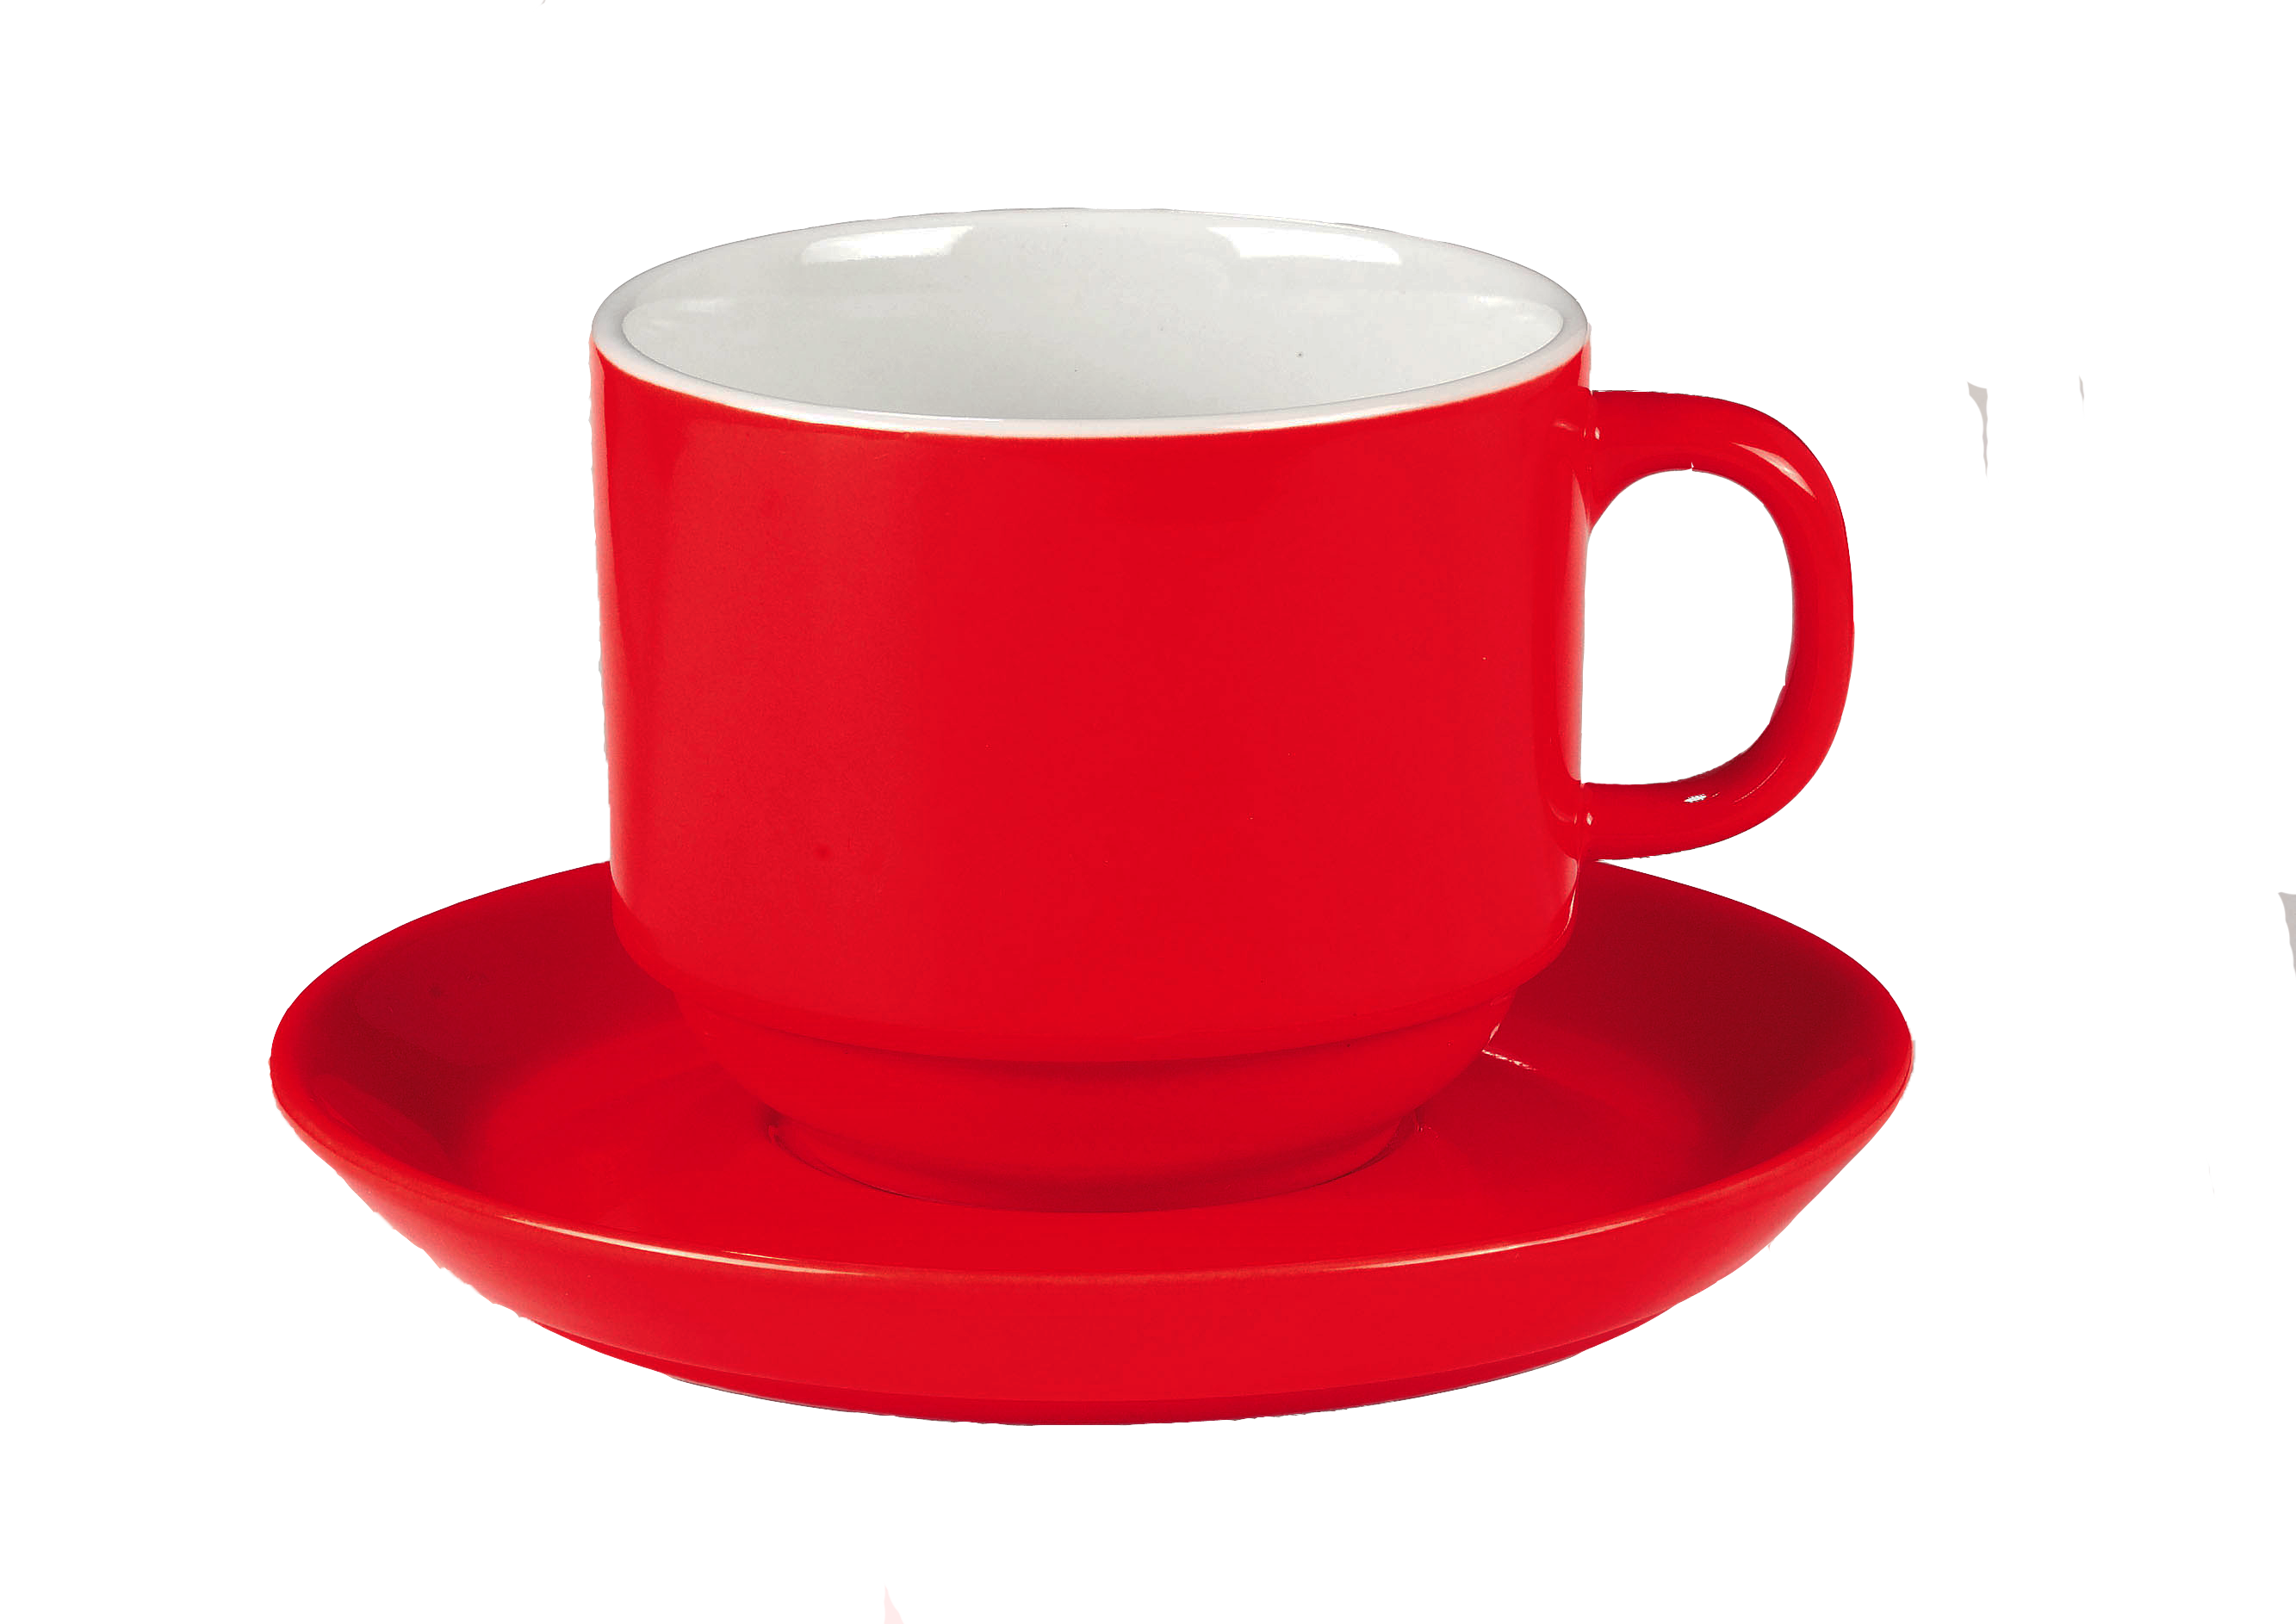 Mug clipart cup plate Two Size Stock Download Cup